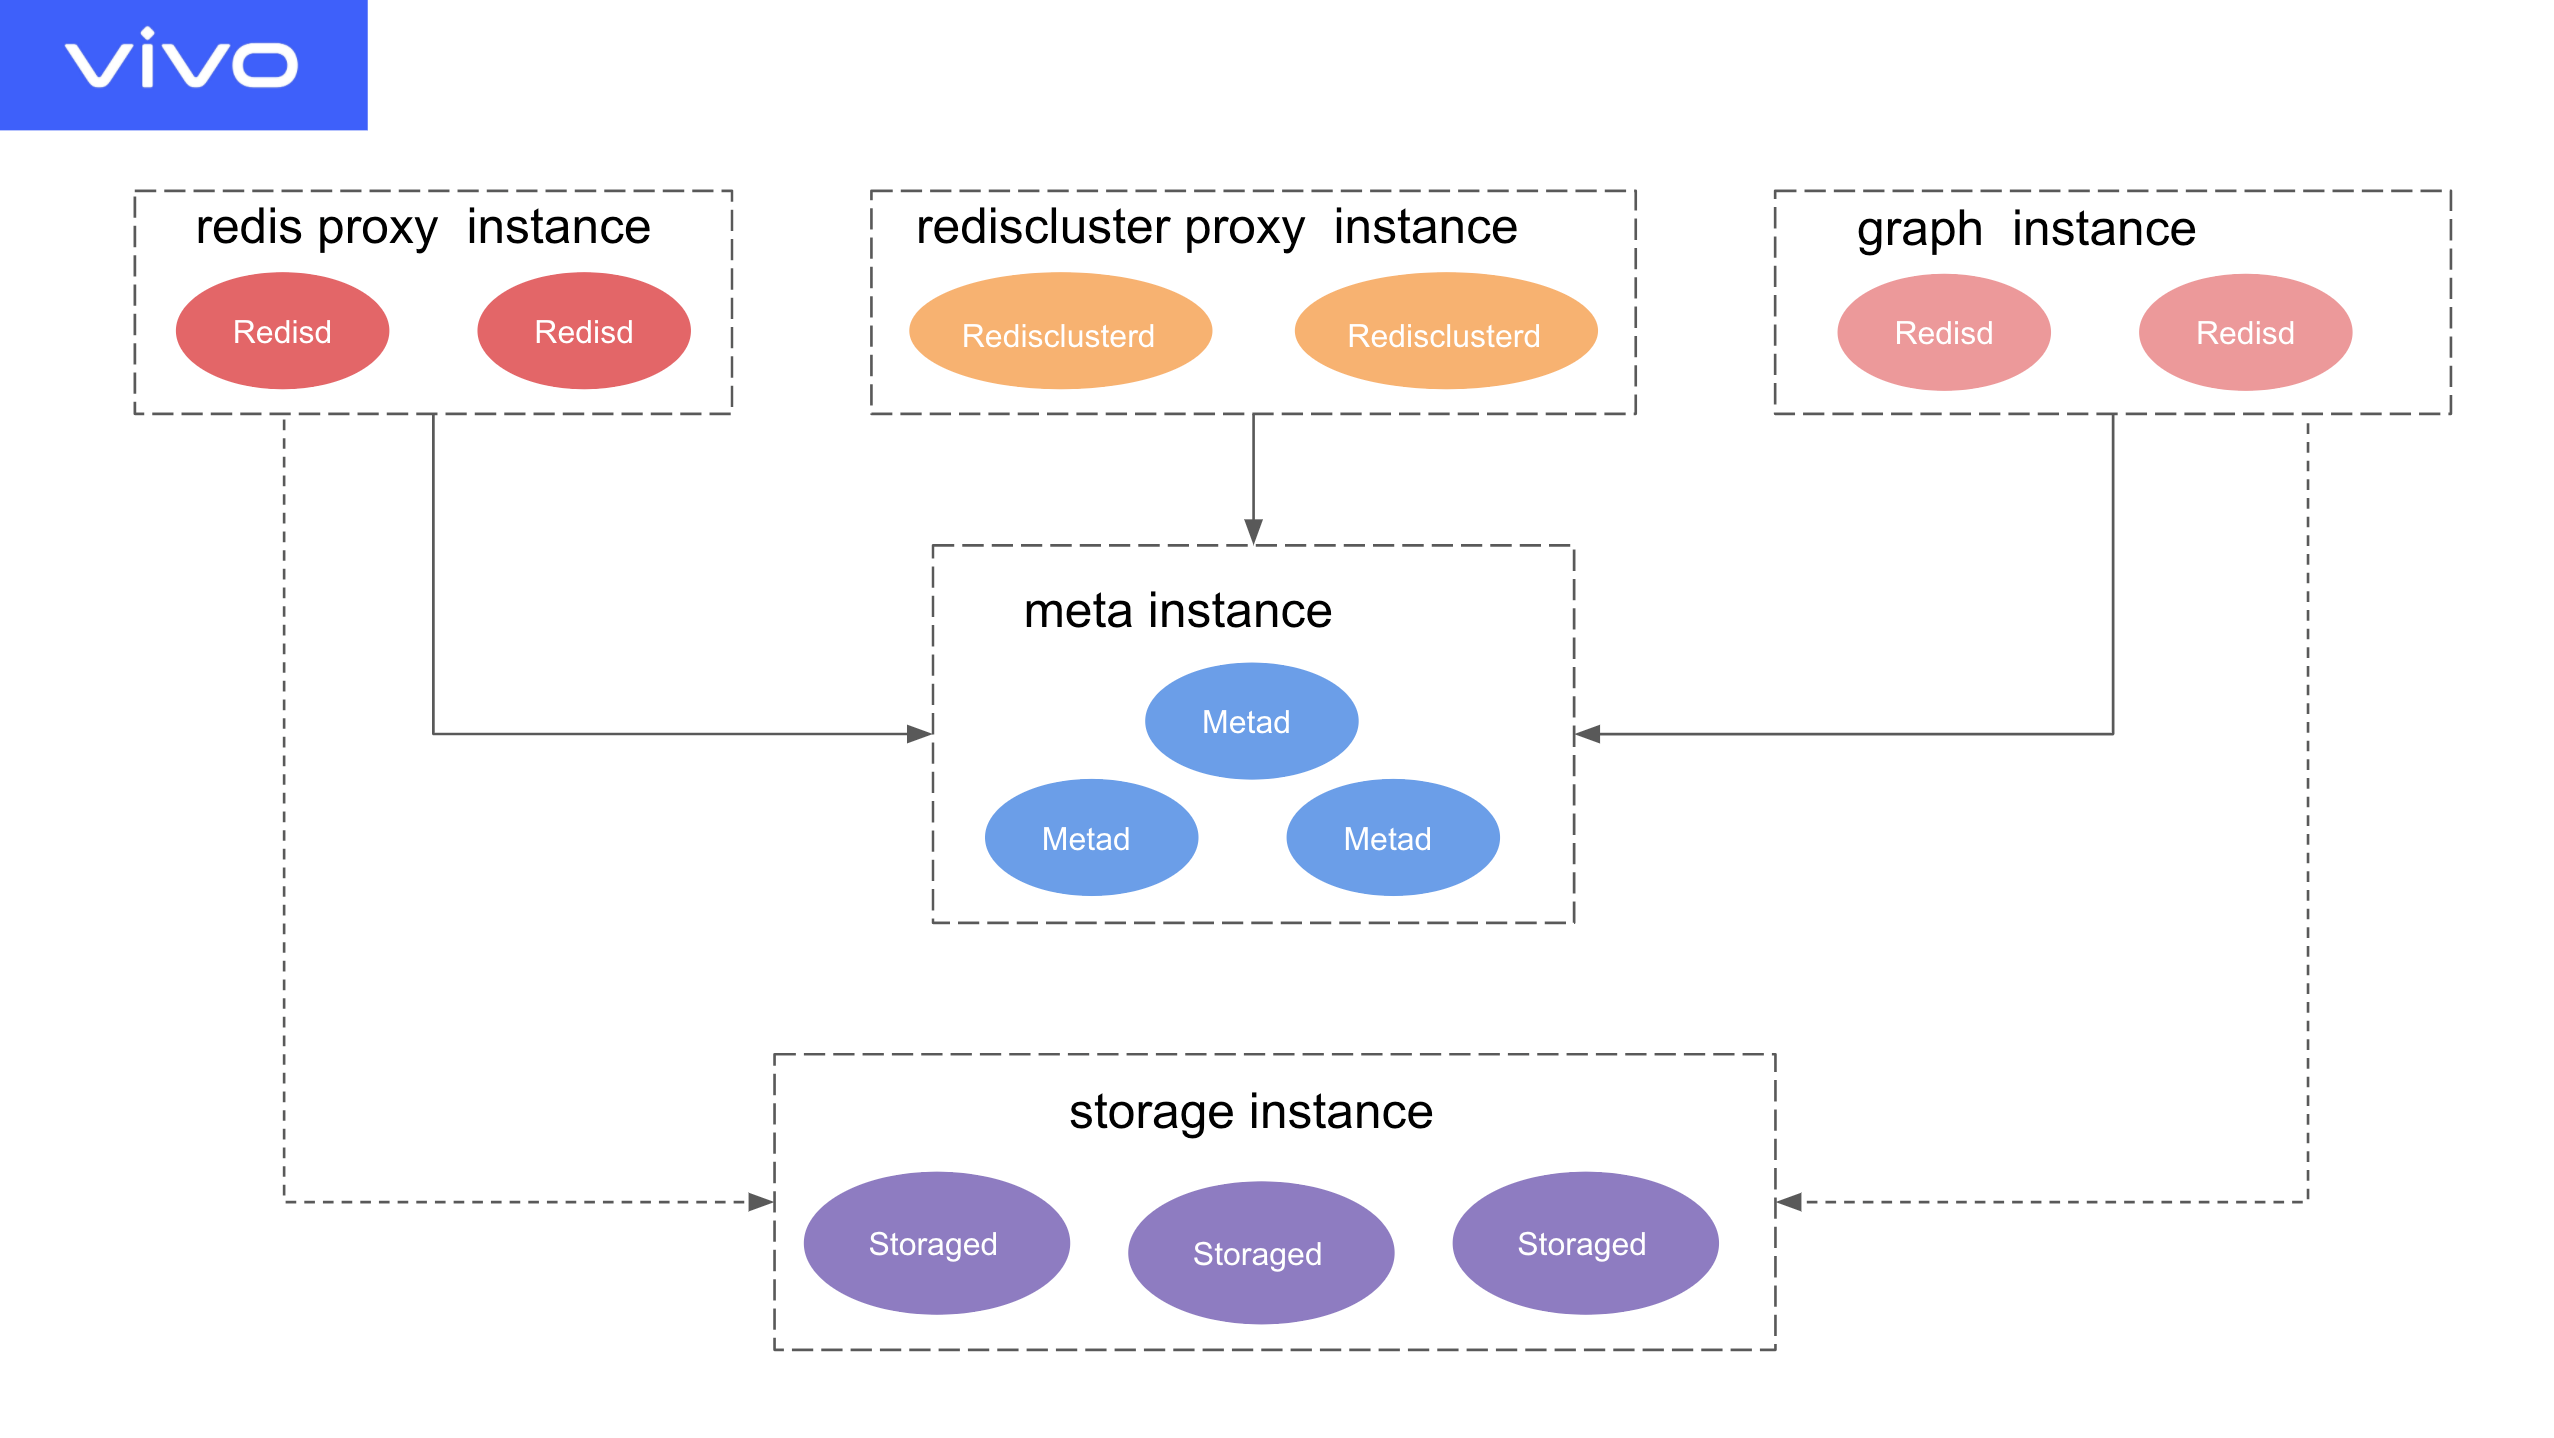 The system architecture of vivo's feature storage platform